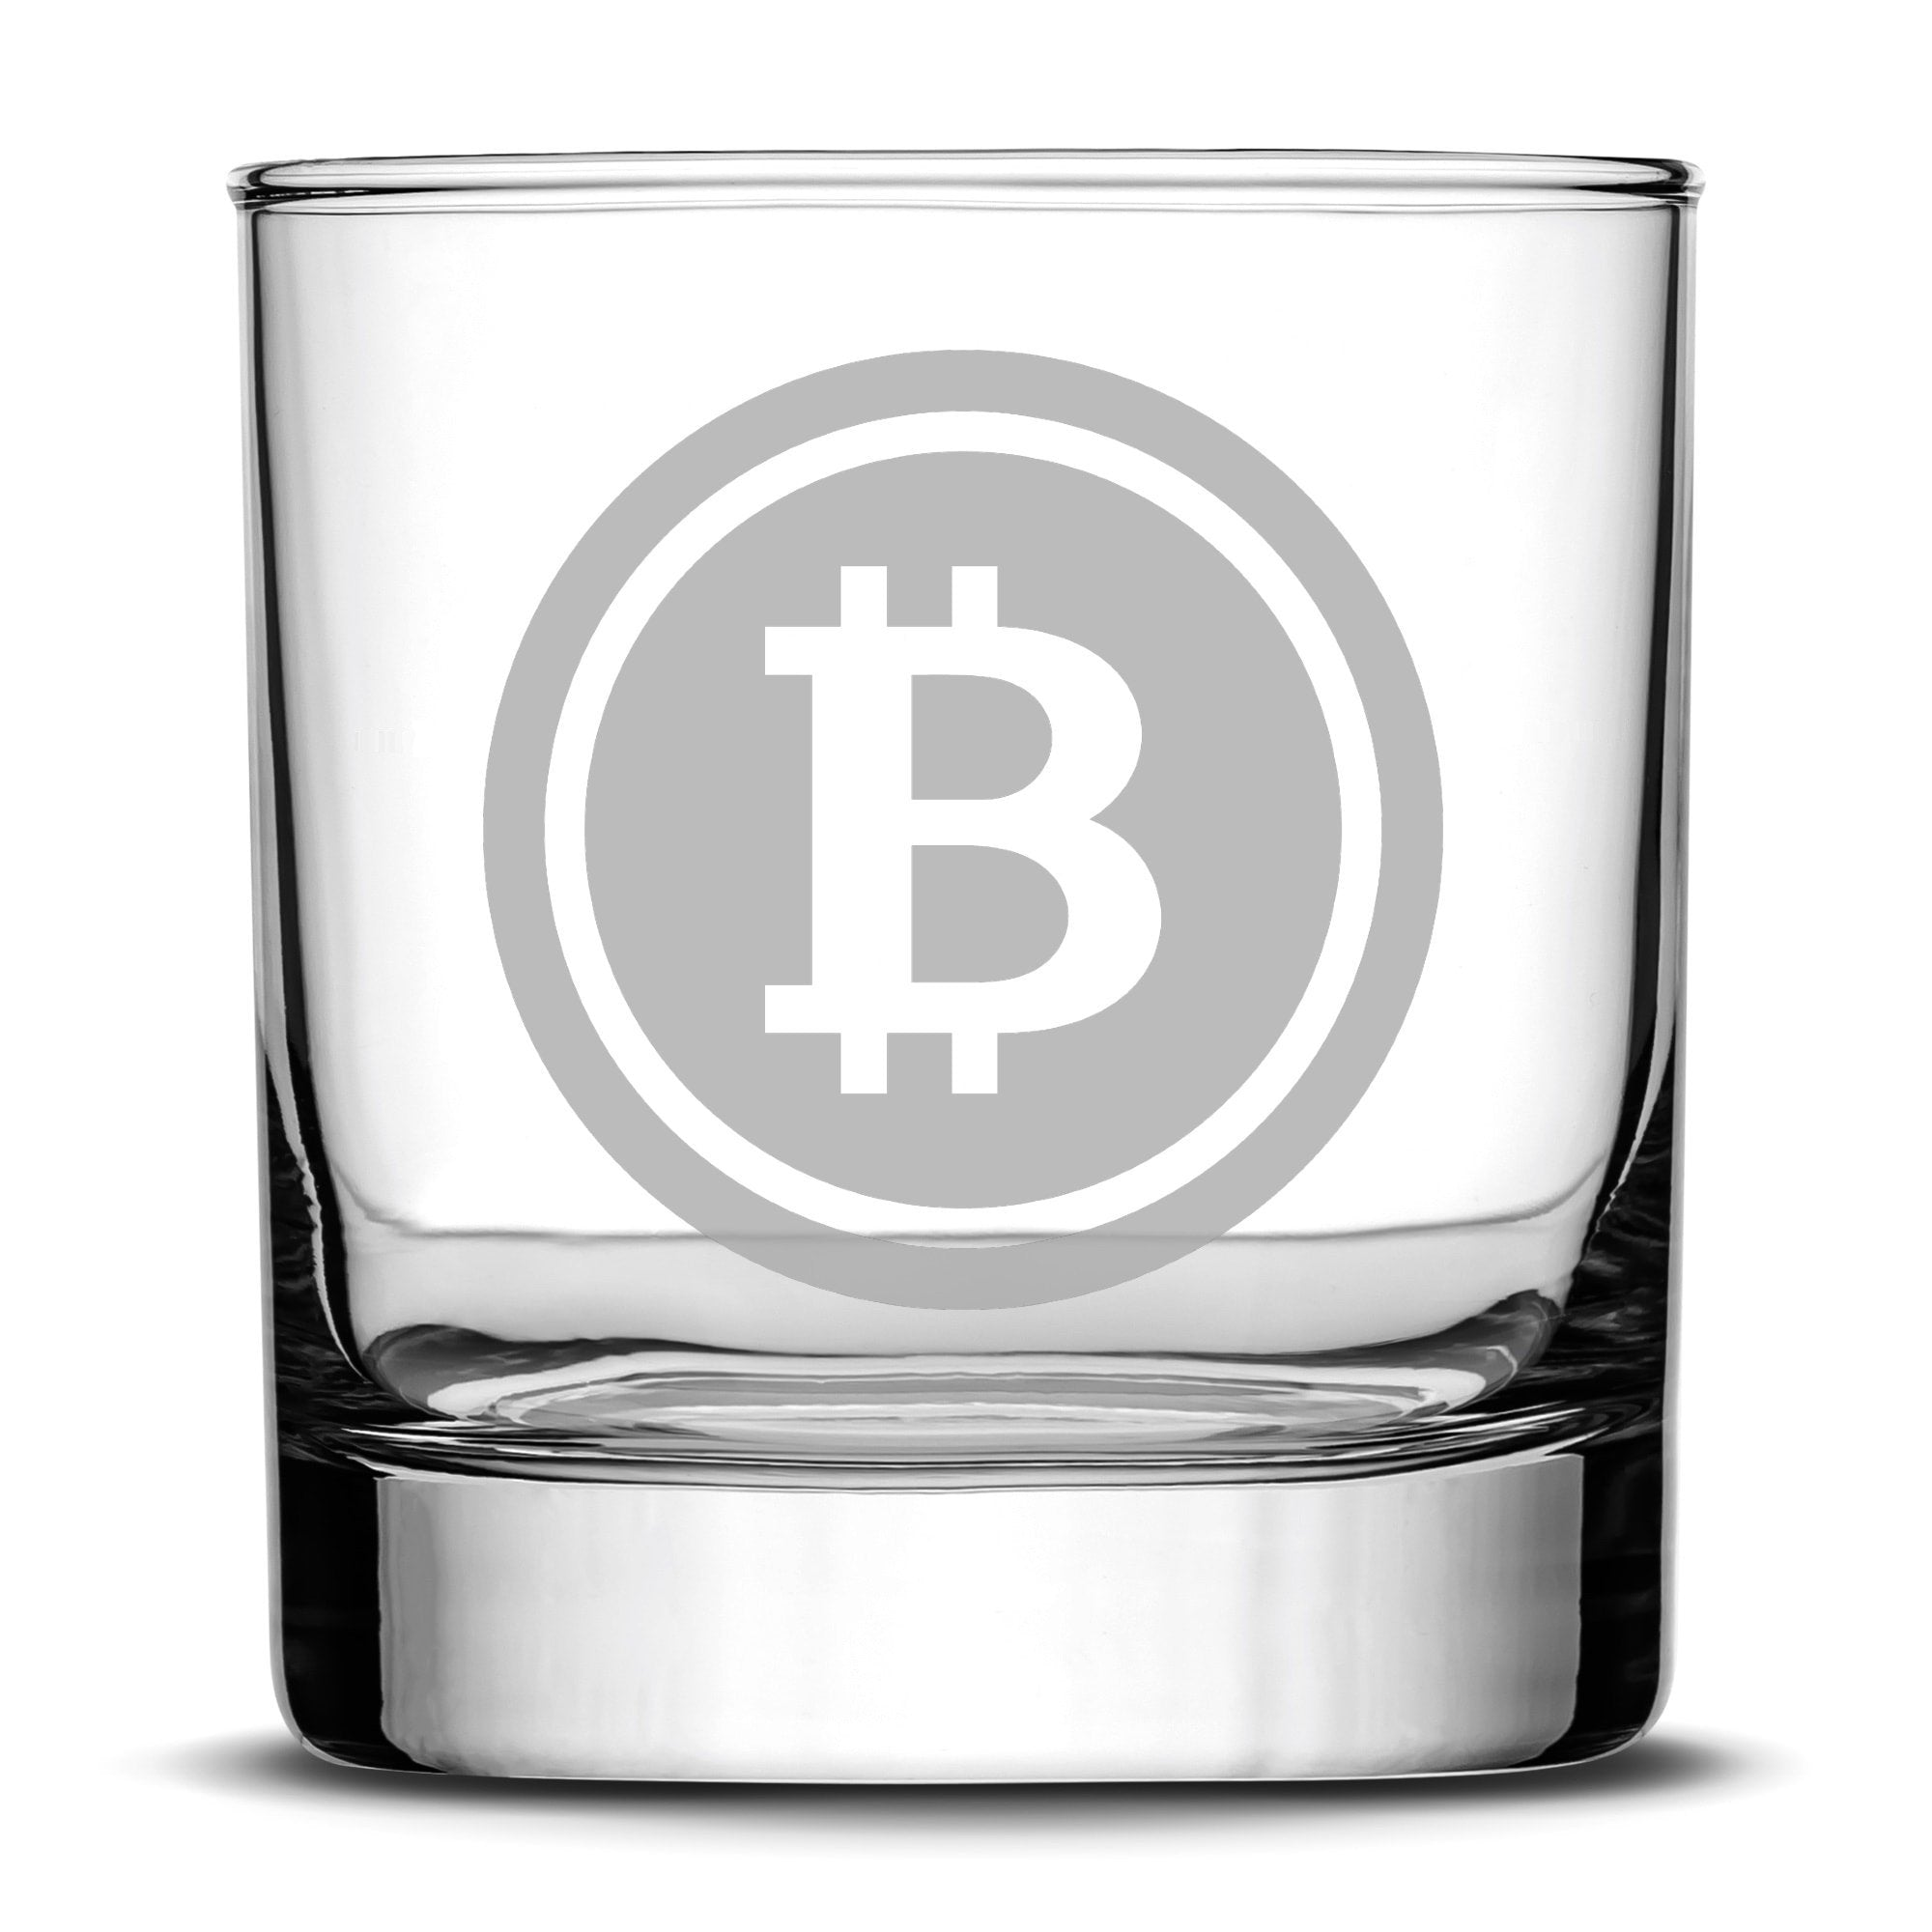 Premium Bitcoin Whiskey Glass, 10oz Deep Etched Rocks Glass, Made in USA by Integrity Bottles